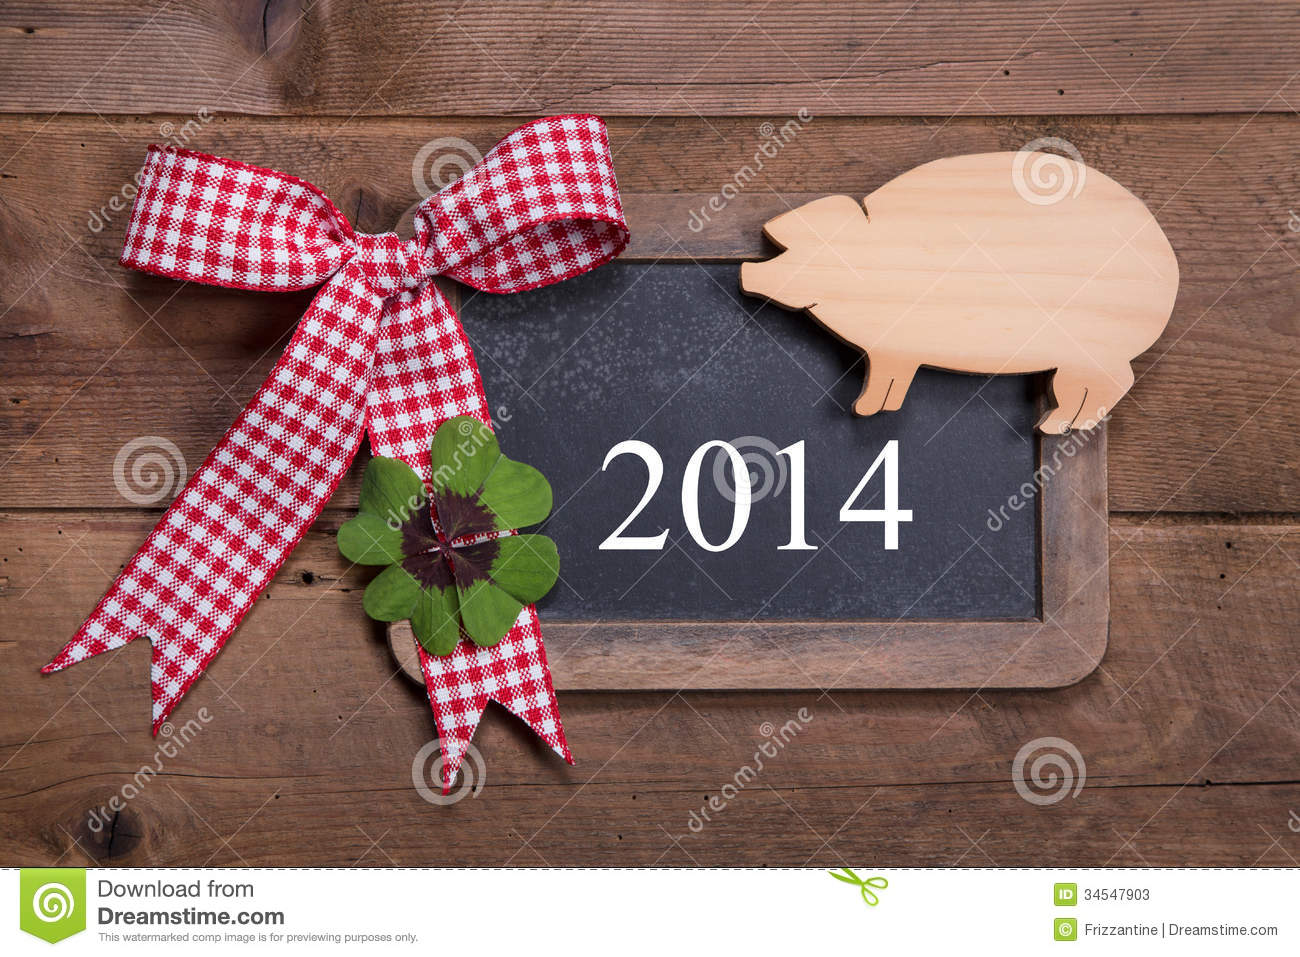 Happy new year 2014 - greeting card on a wooden background with